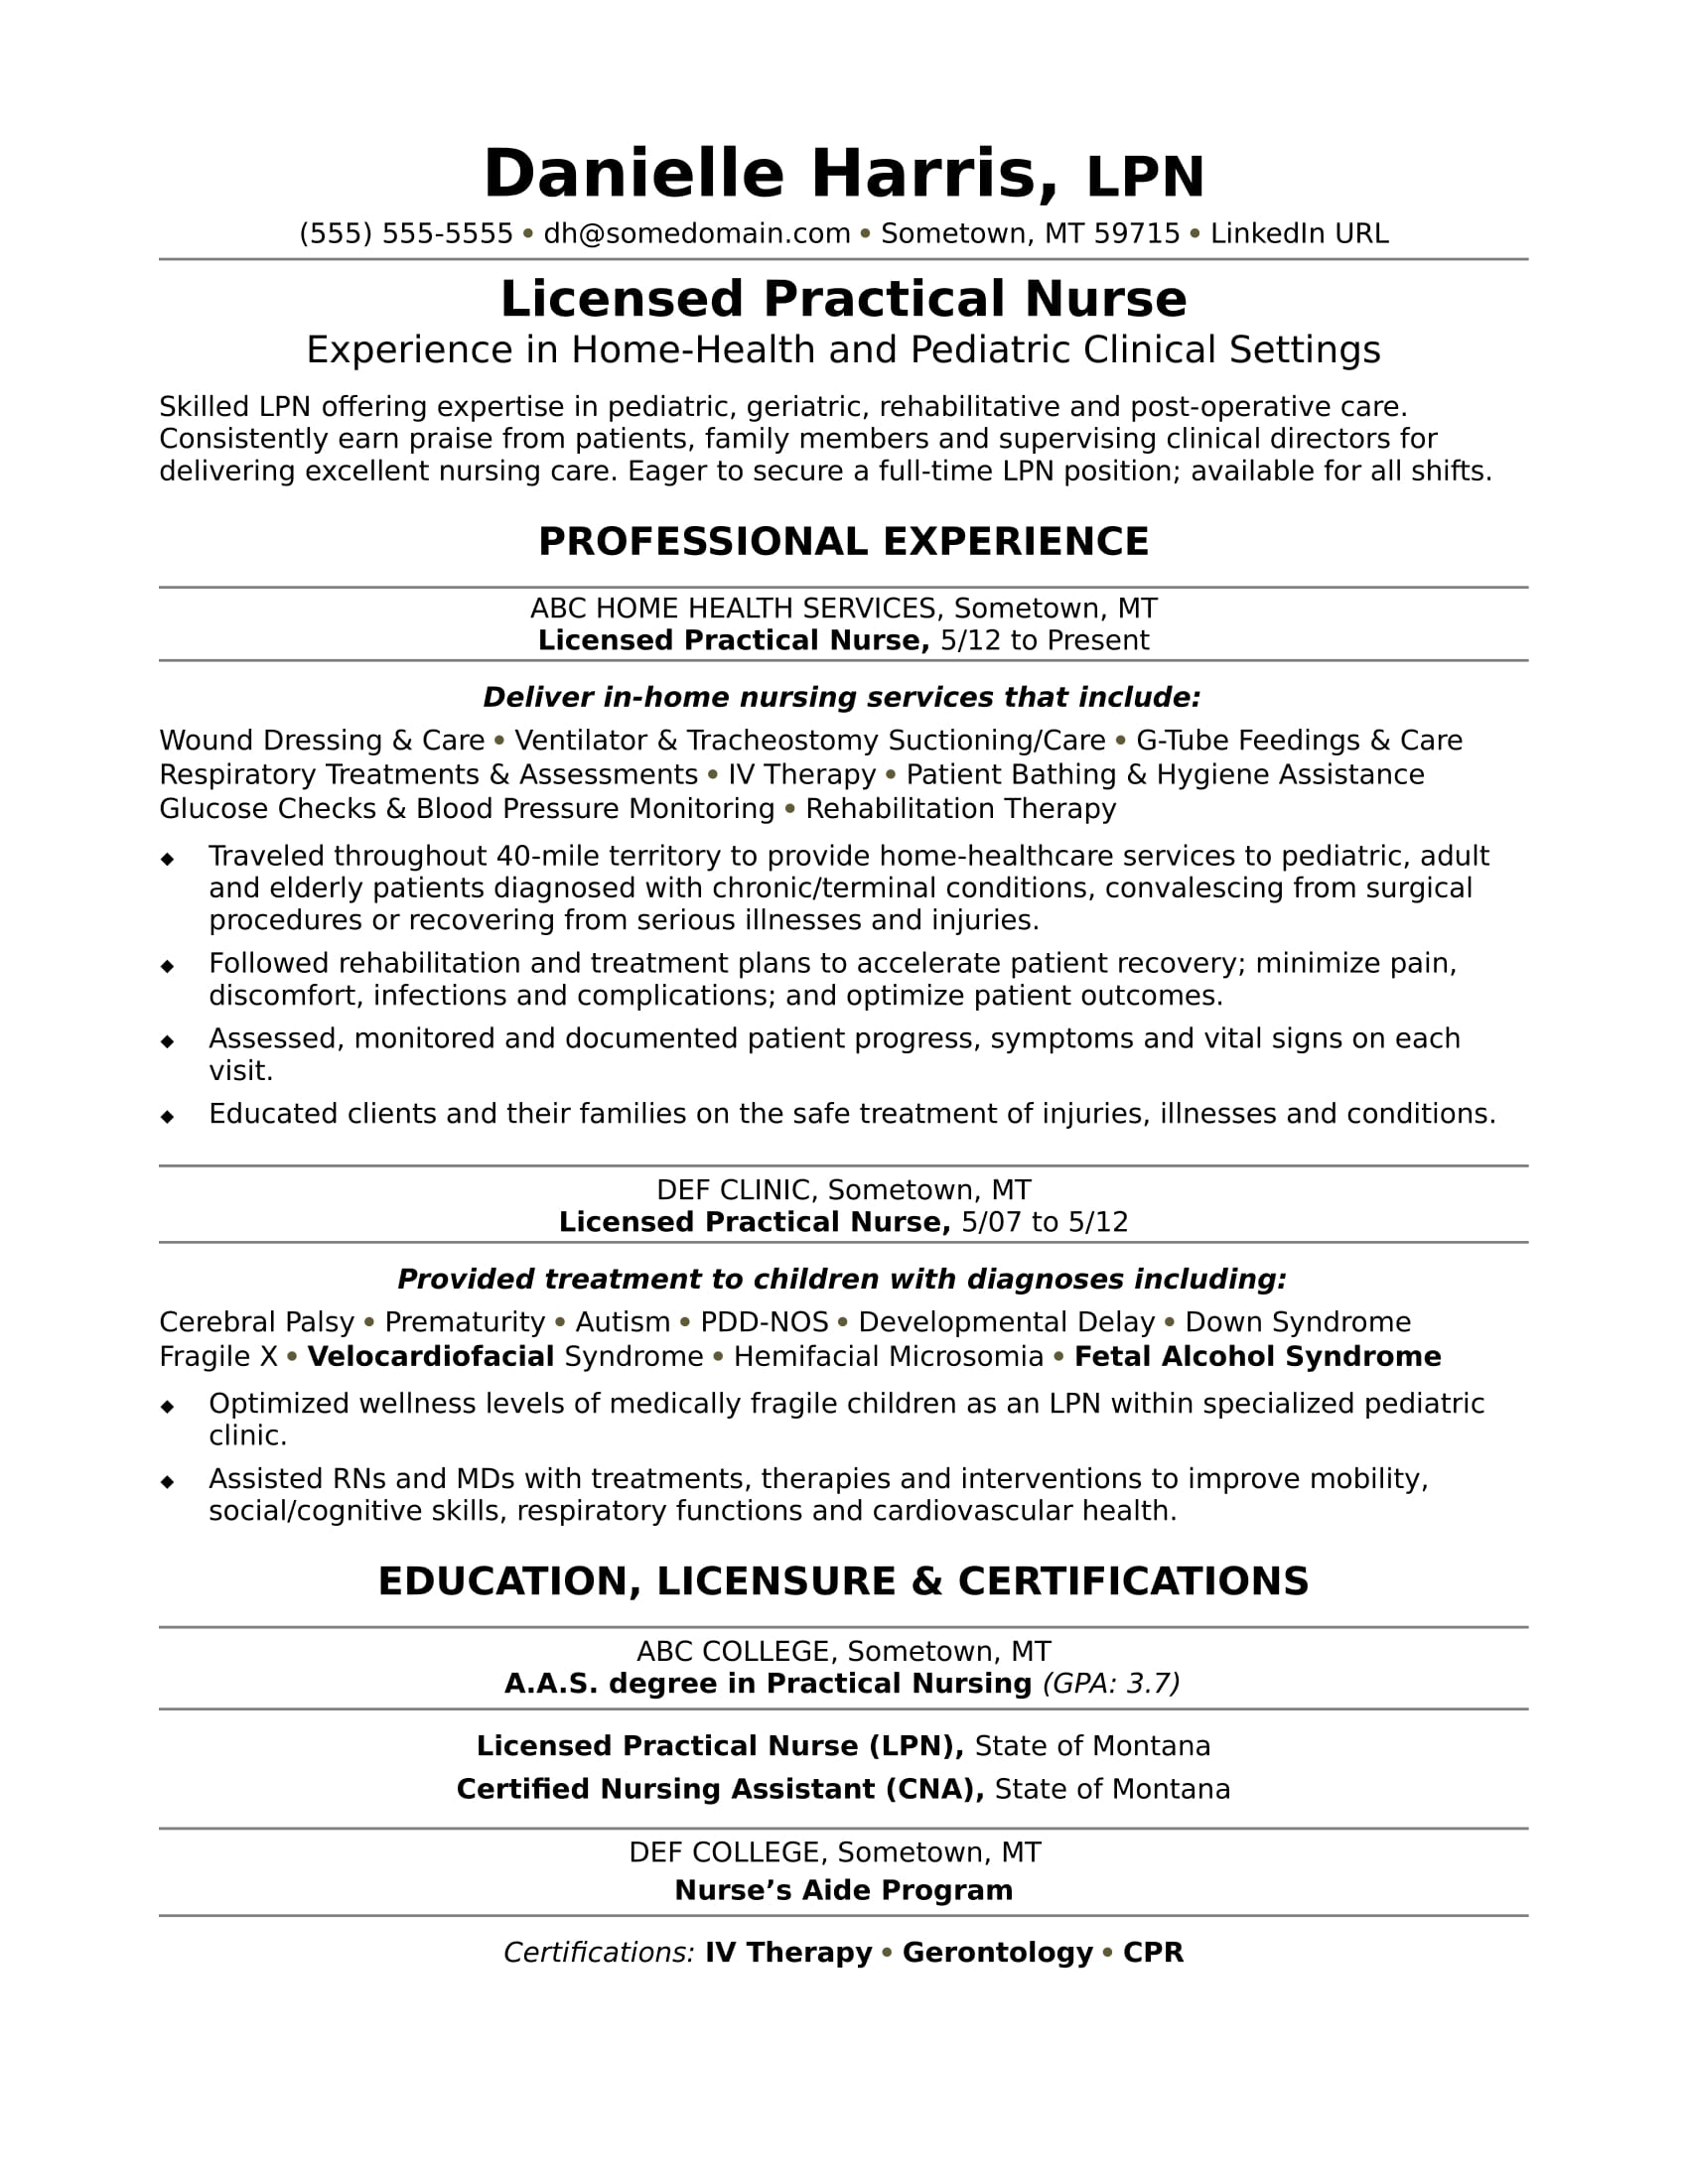 licensed practical nurse resume sample monster assisted living duties indeed data Resume Assisted Living Duties Resume